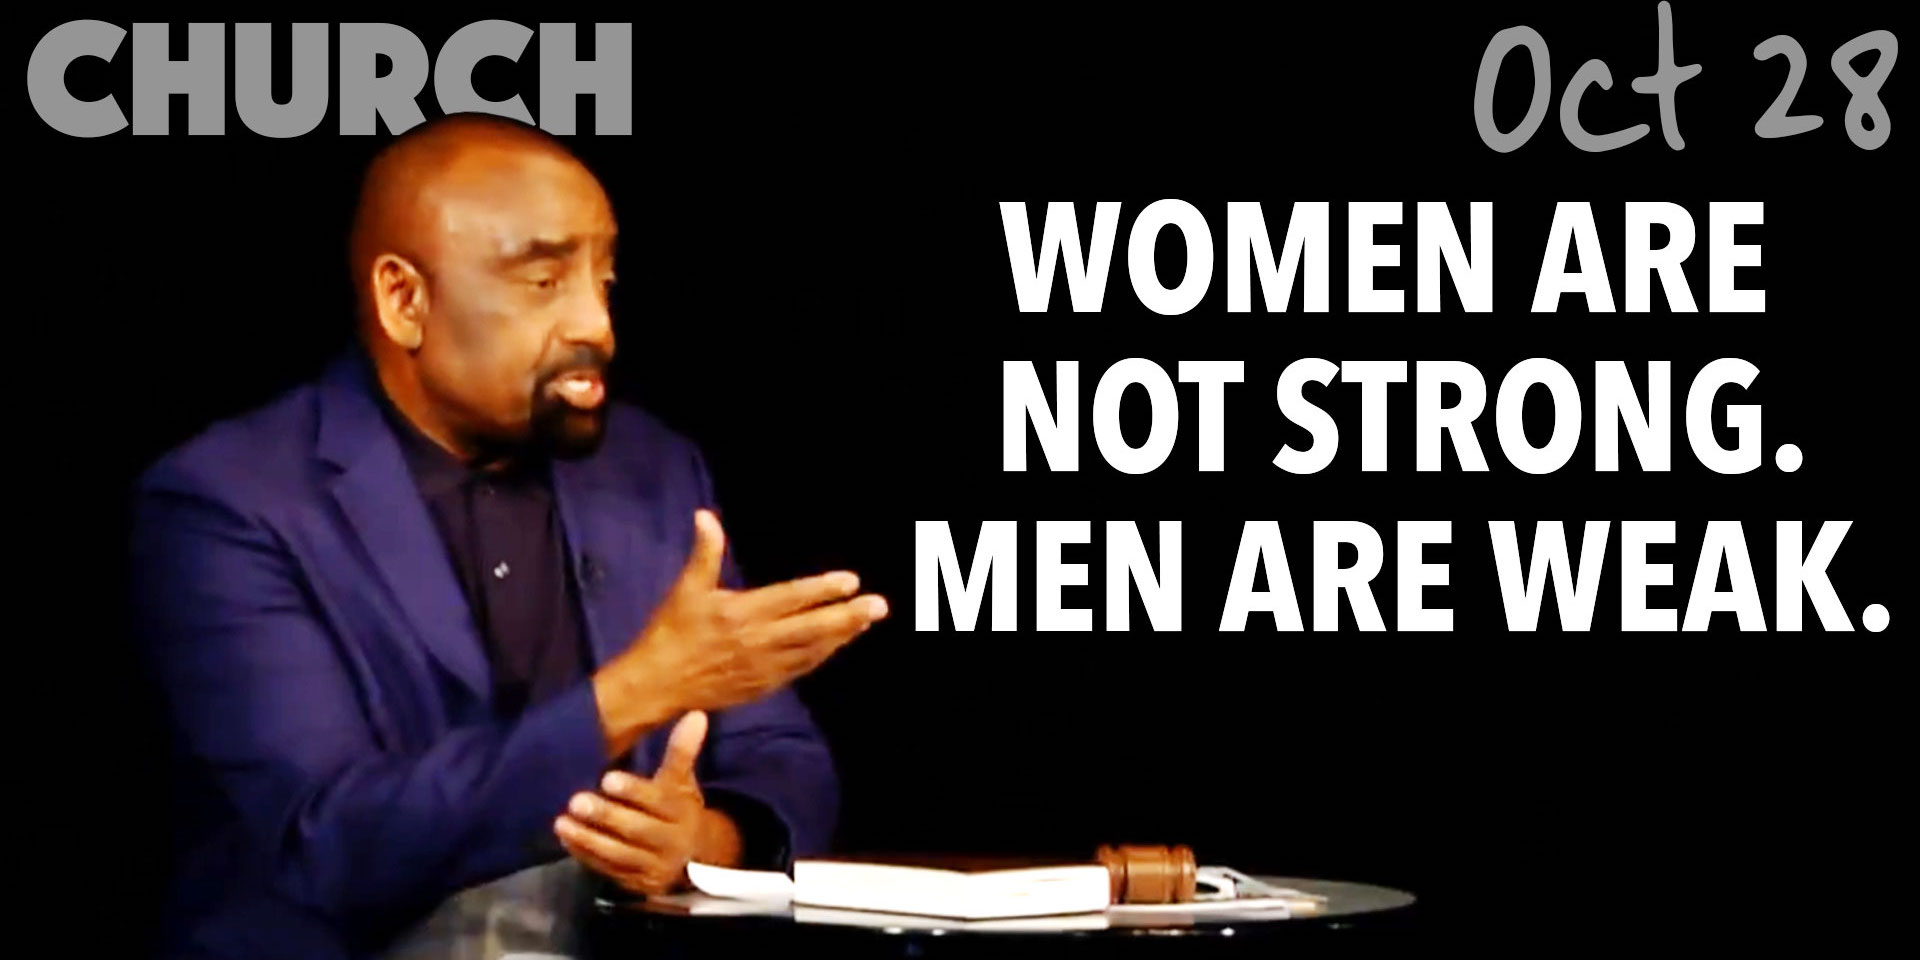 Women are not strong; men are weak (Church Oct 28)